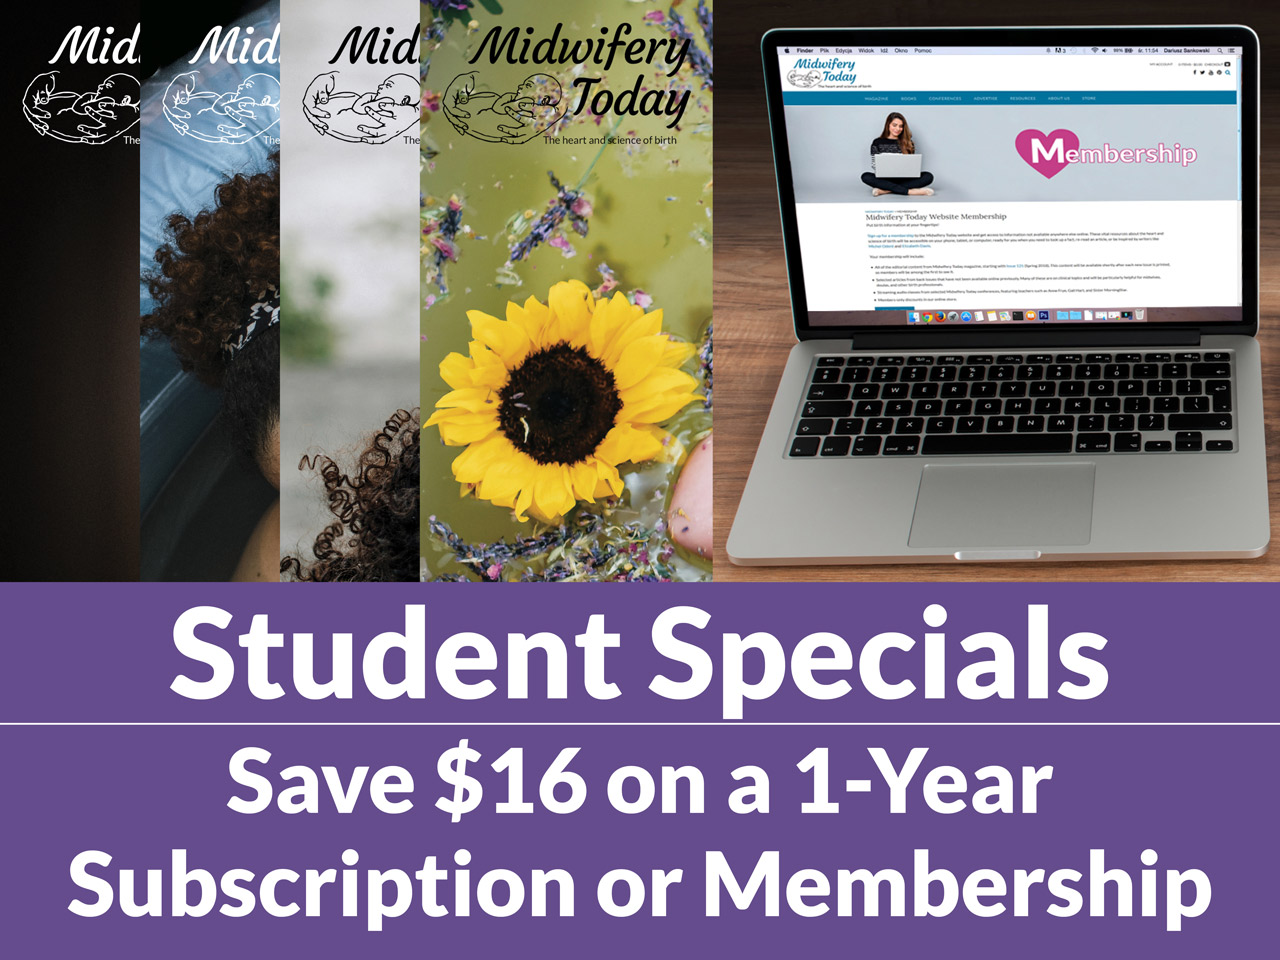 Save $16 on a one-year Midwifery Today subscription and save $16 on a one-year Midwifery Today Website Membership. This special offer is good for students only